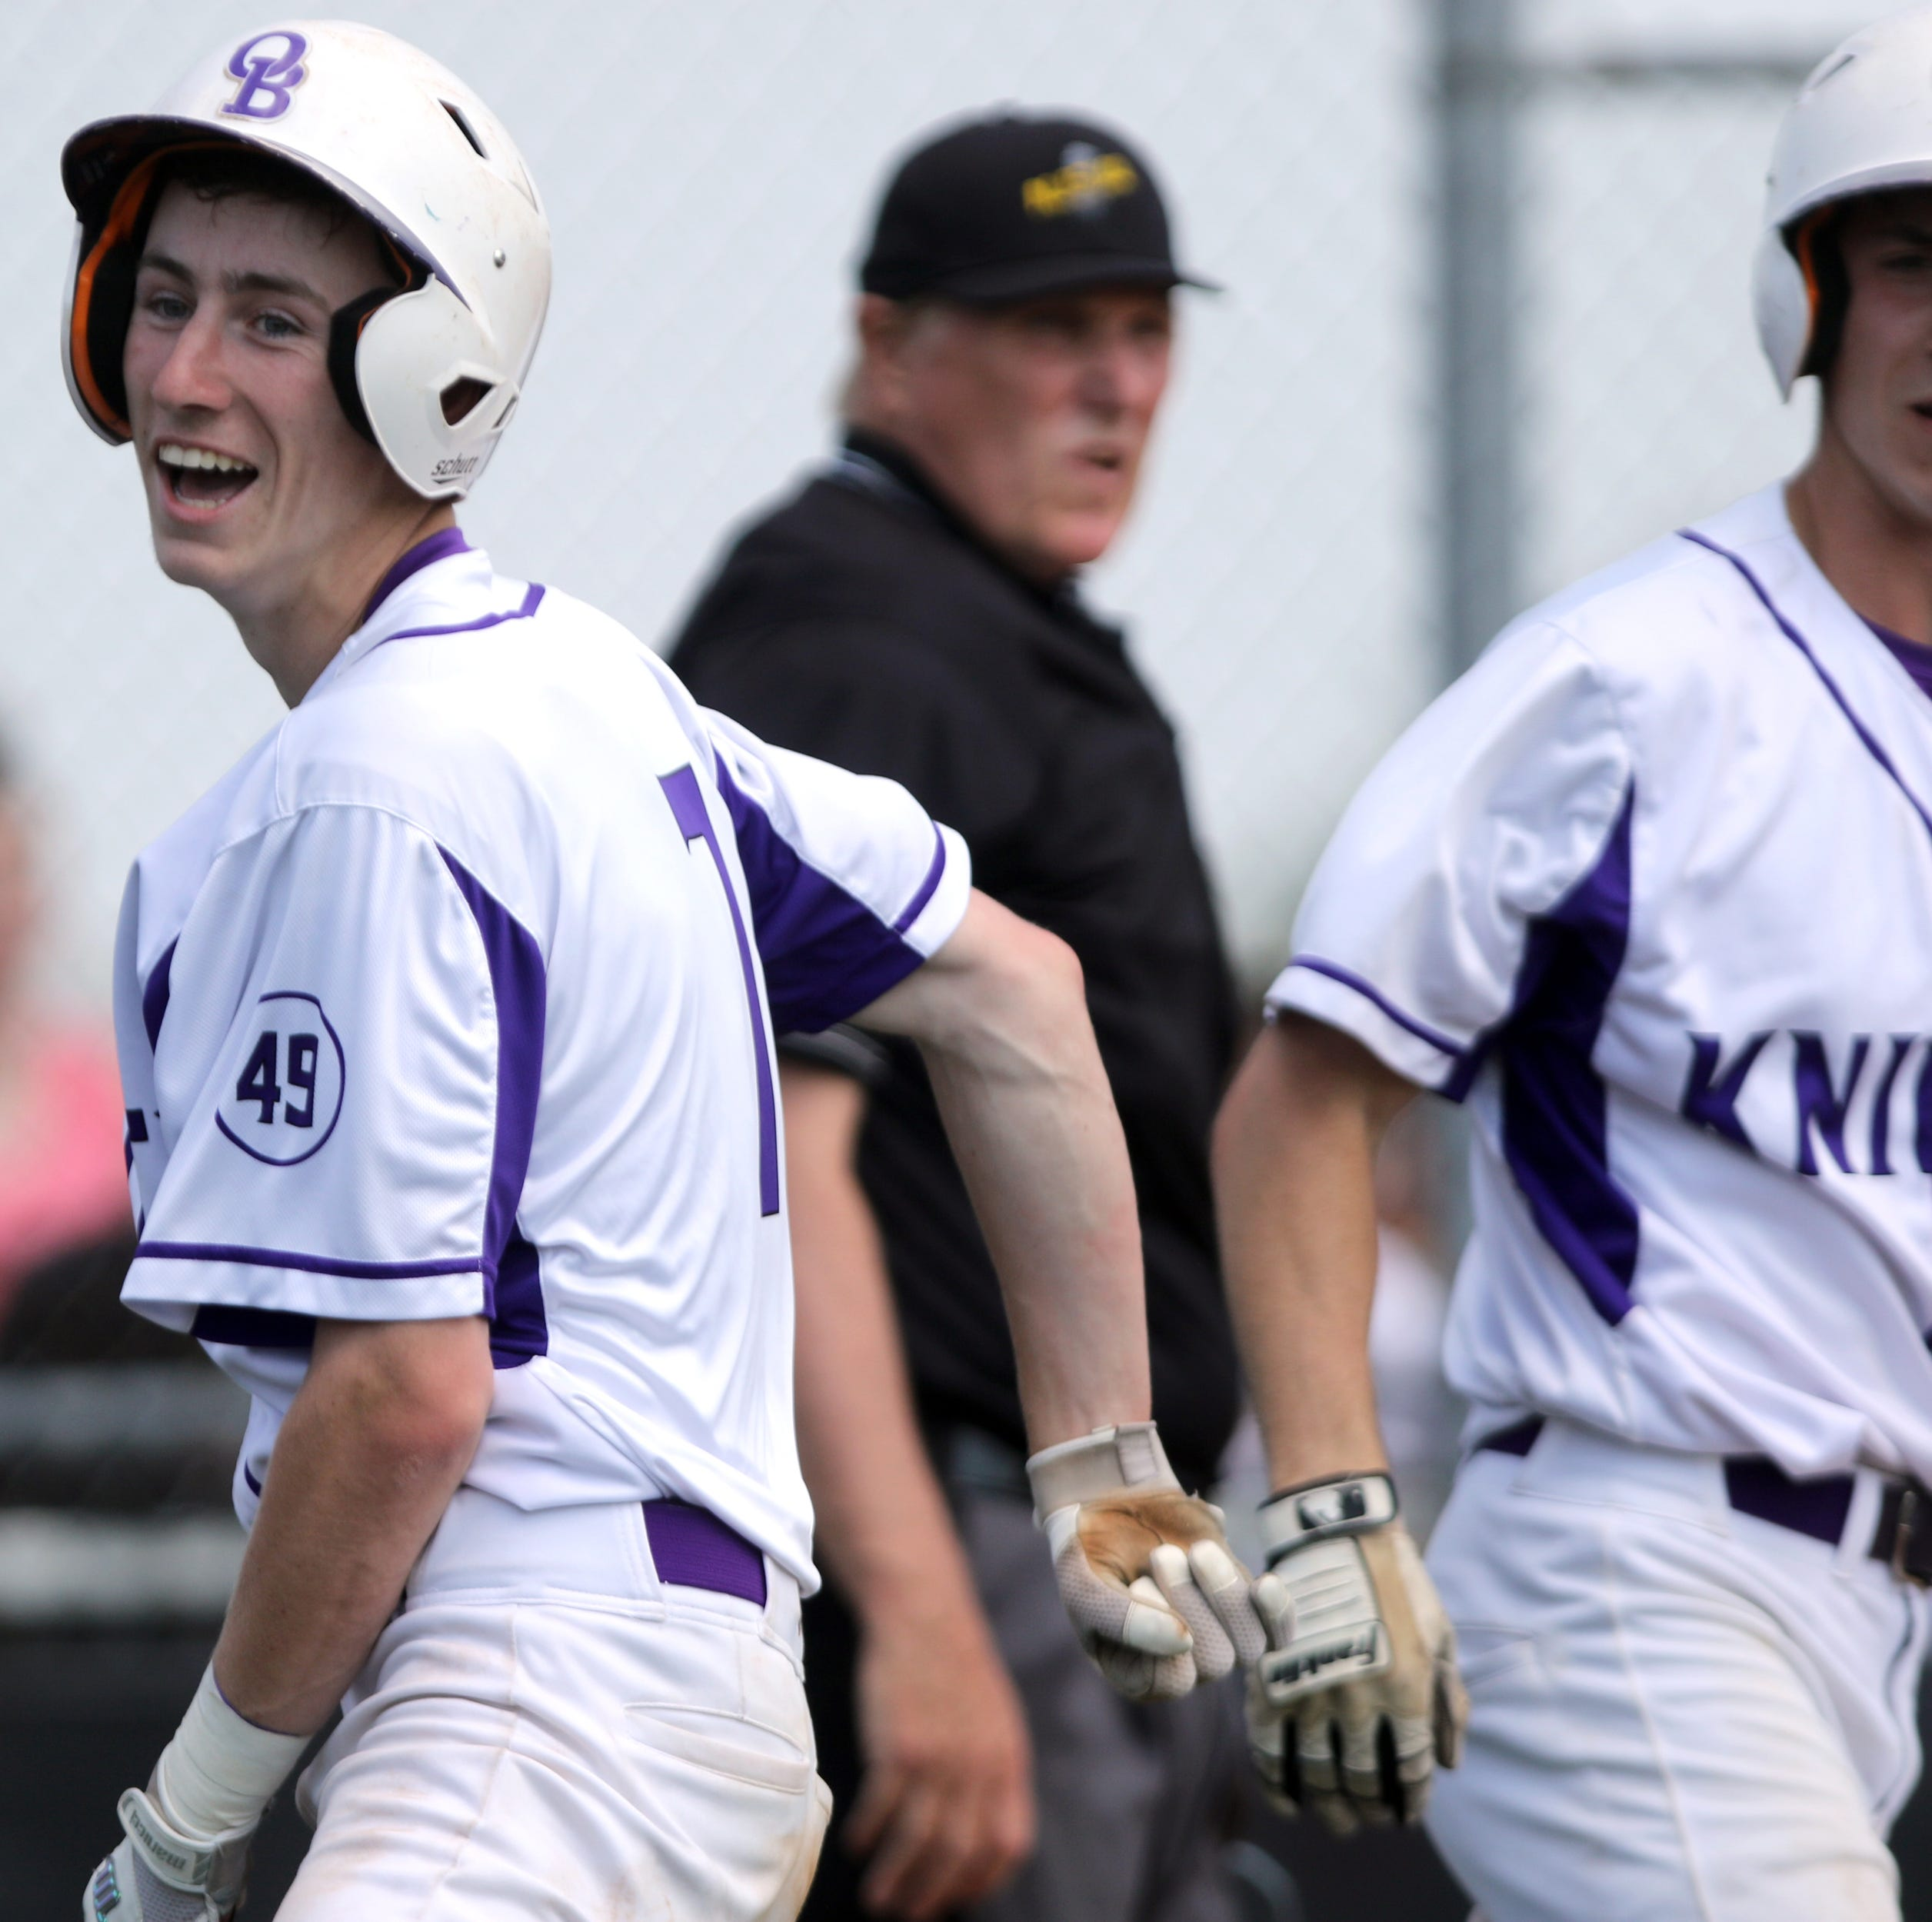 Old Bridge wins GMC baseball title for Attianese in dramatic fashion